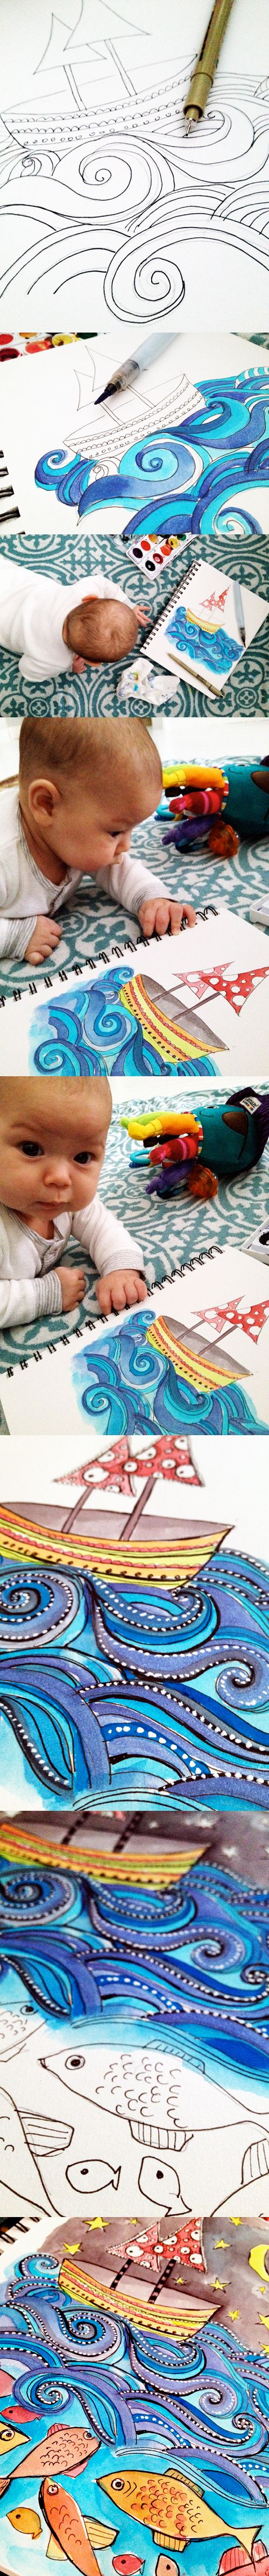 think about drawing a 7-layer story: Line Drawings, Pens Drawings Watercolor, Drawings Waves, Boats Drawings, Art Drawings, Doodles Art Ocean, Art Colour Boats, Drawings Boats, Colour Waves